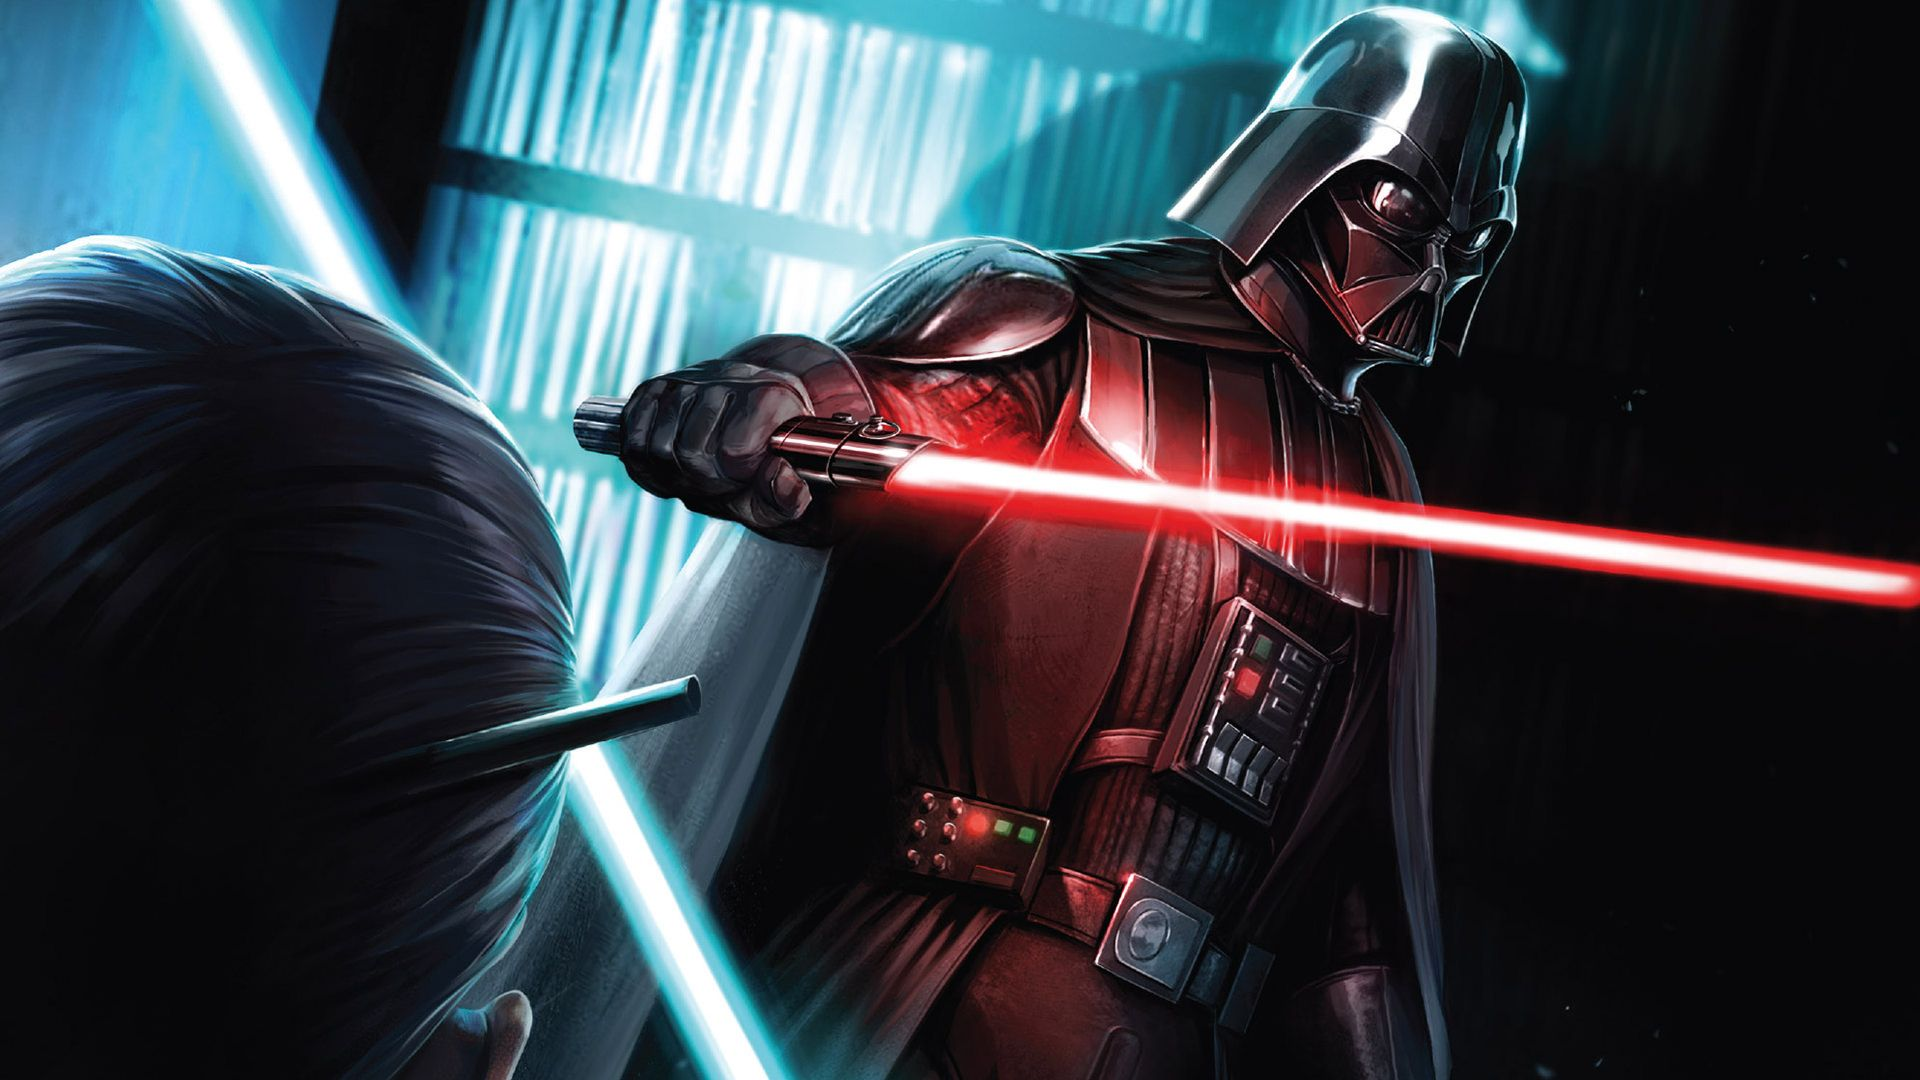 darth vader wallpaper hd 1920x1080